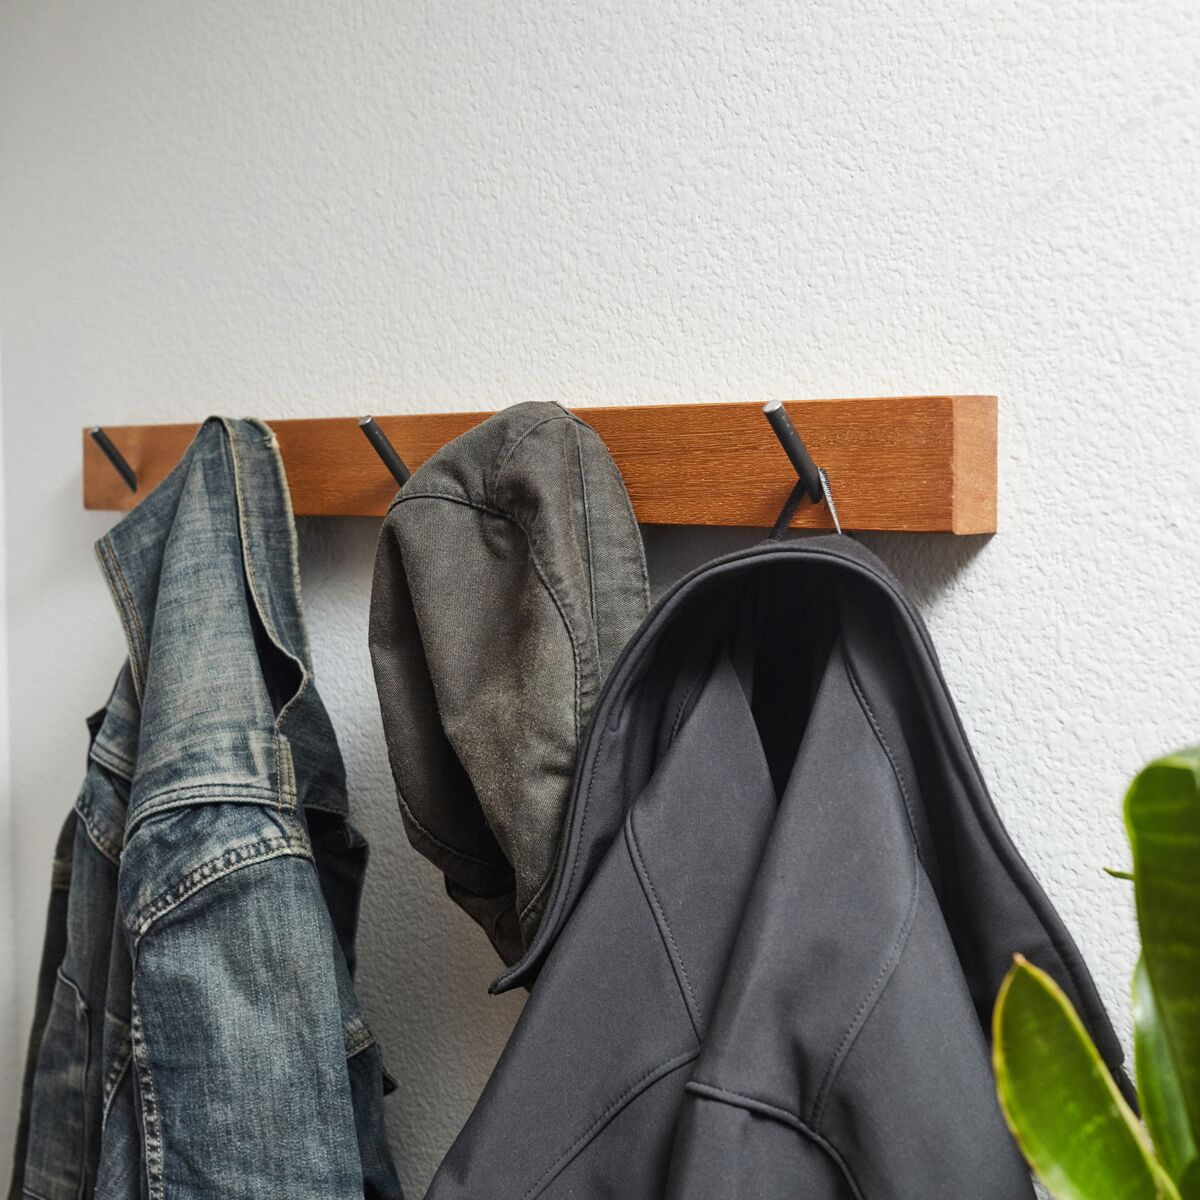 Five-Peg Coat Hook - Cool Material